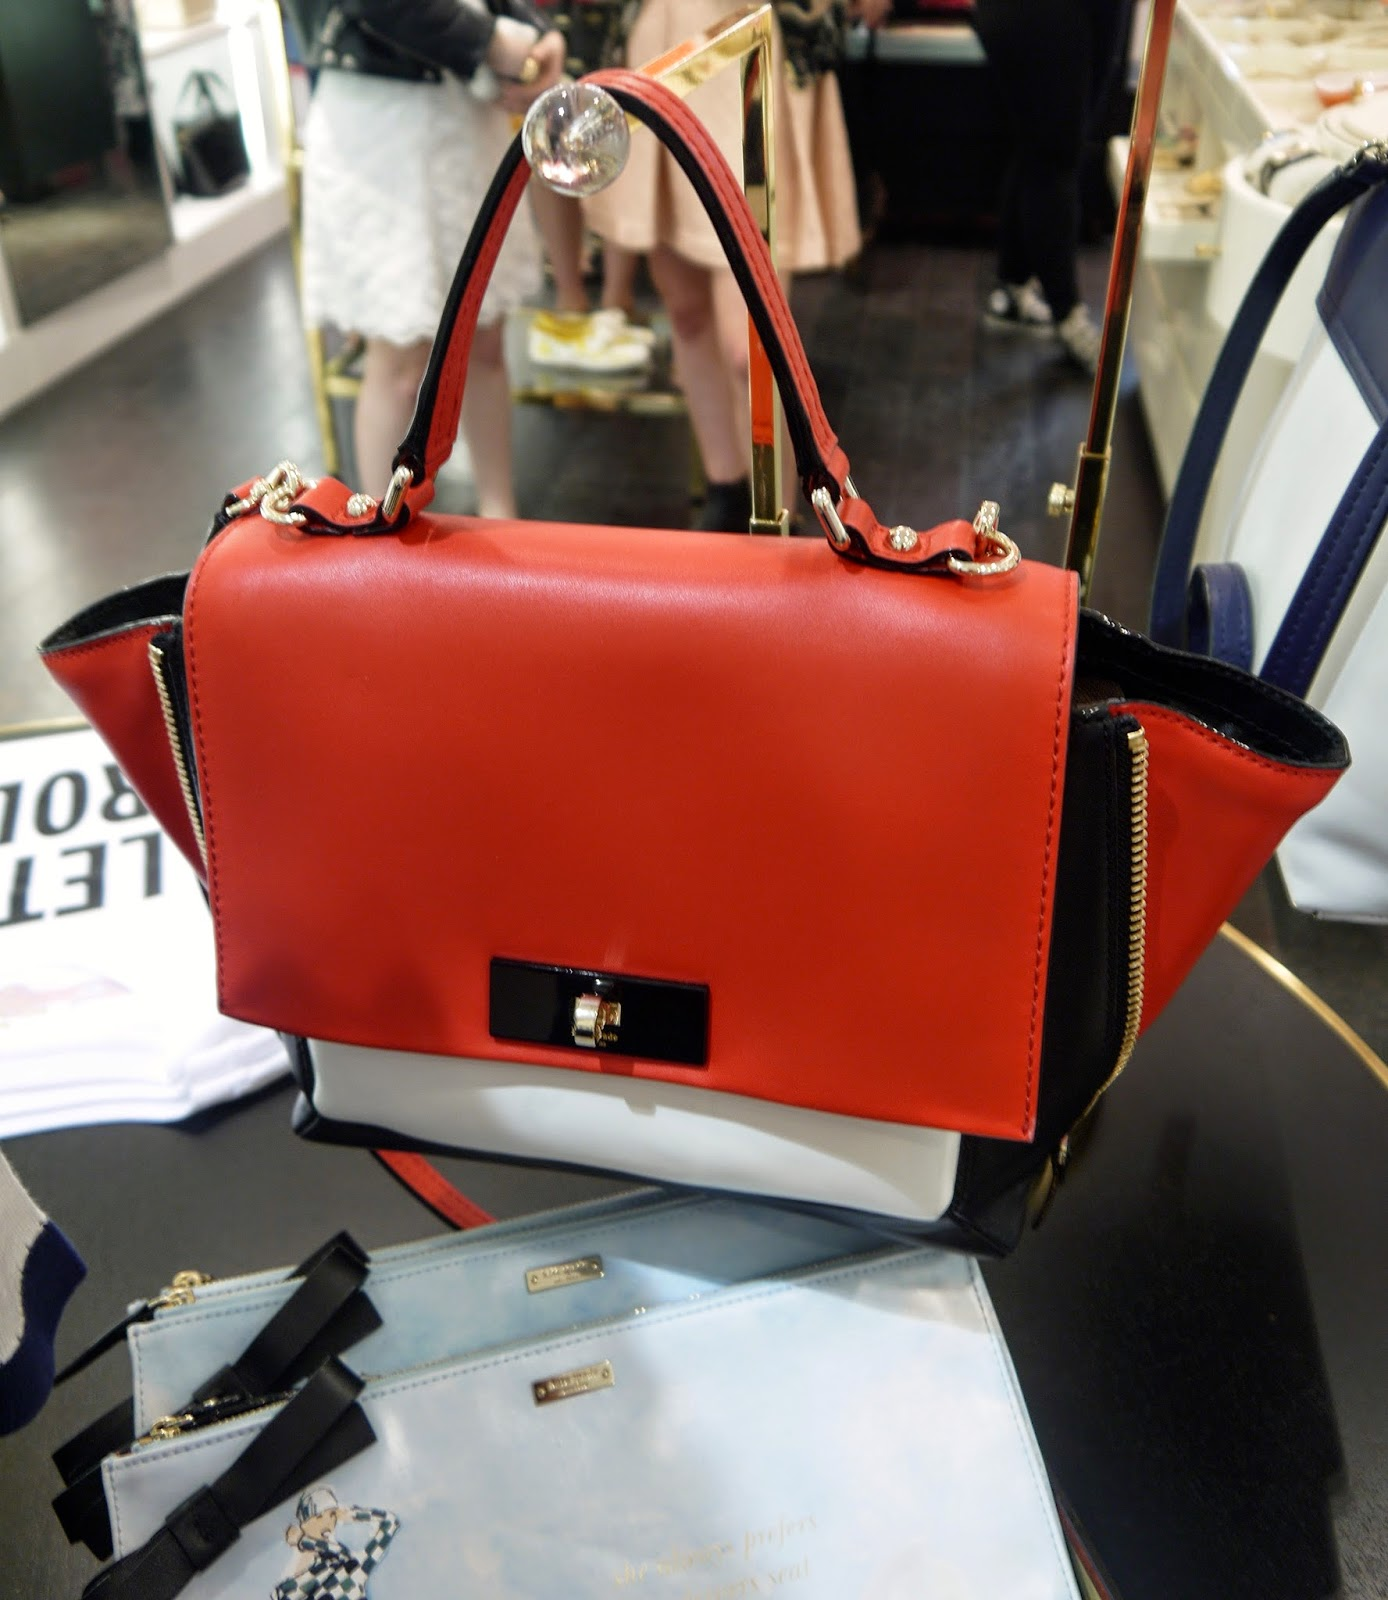 The Gorgeous Cross Body Abbie Bag from Kate Spade